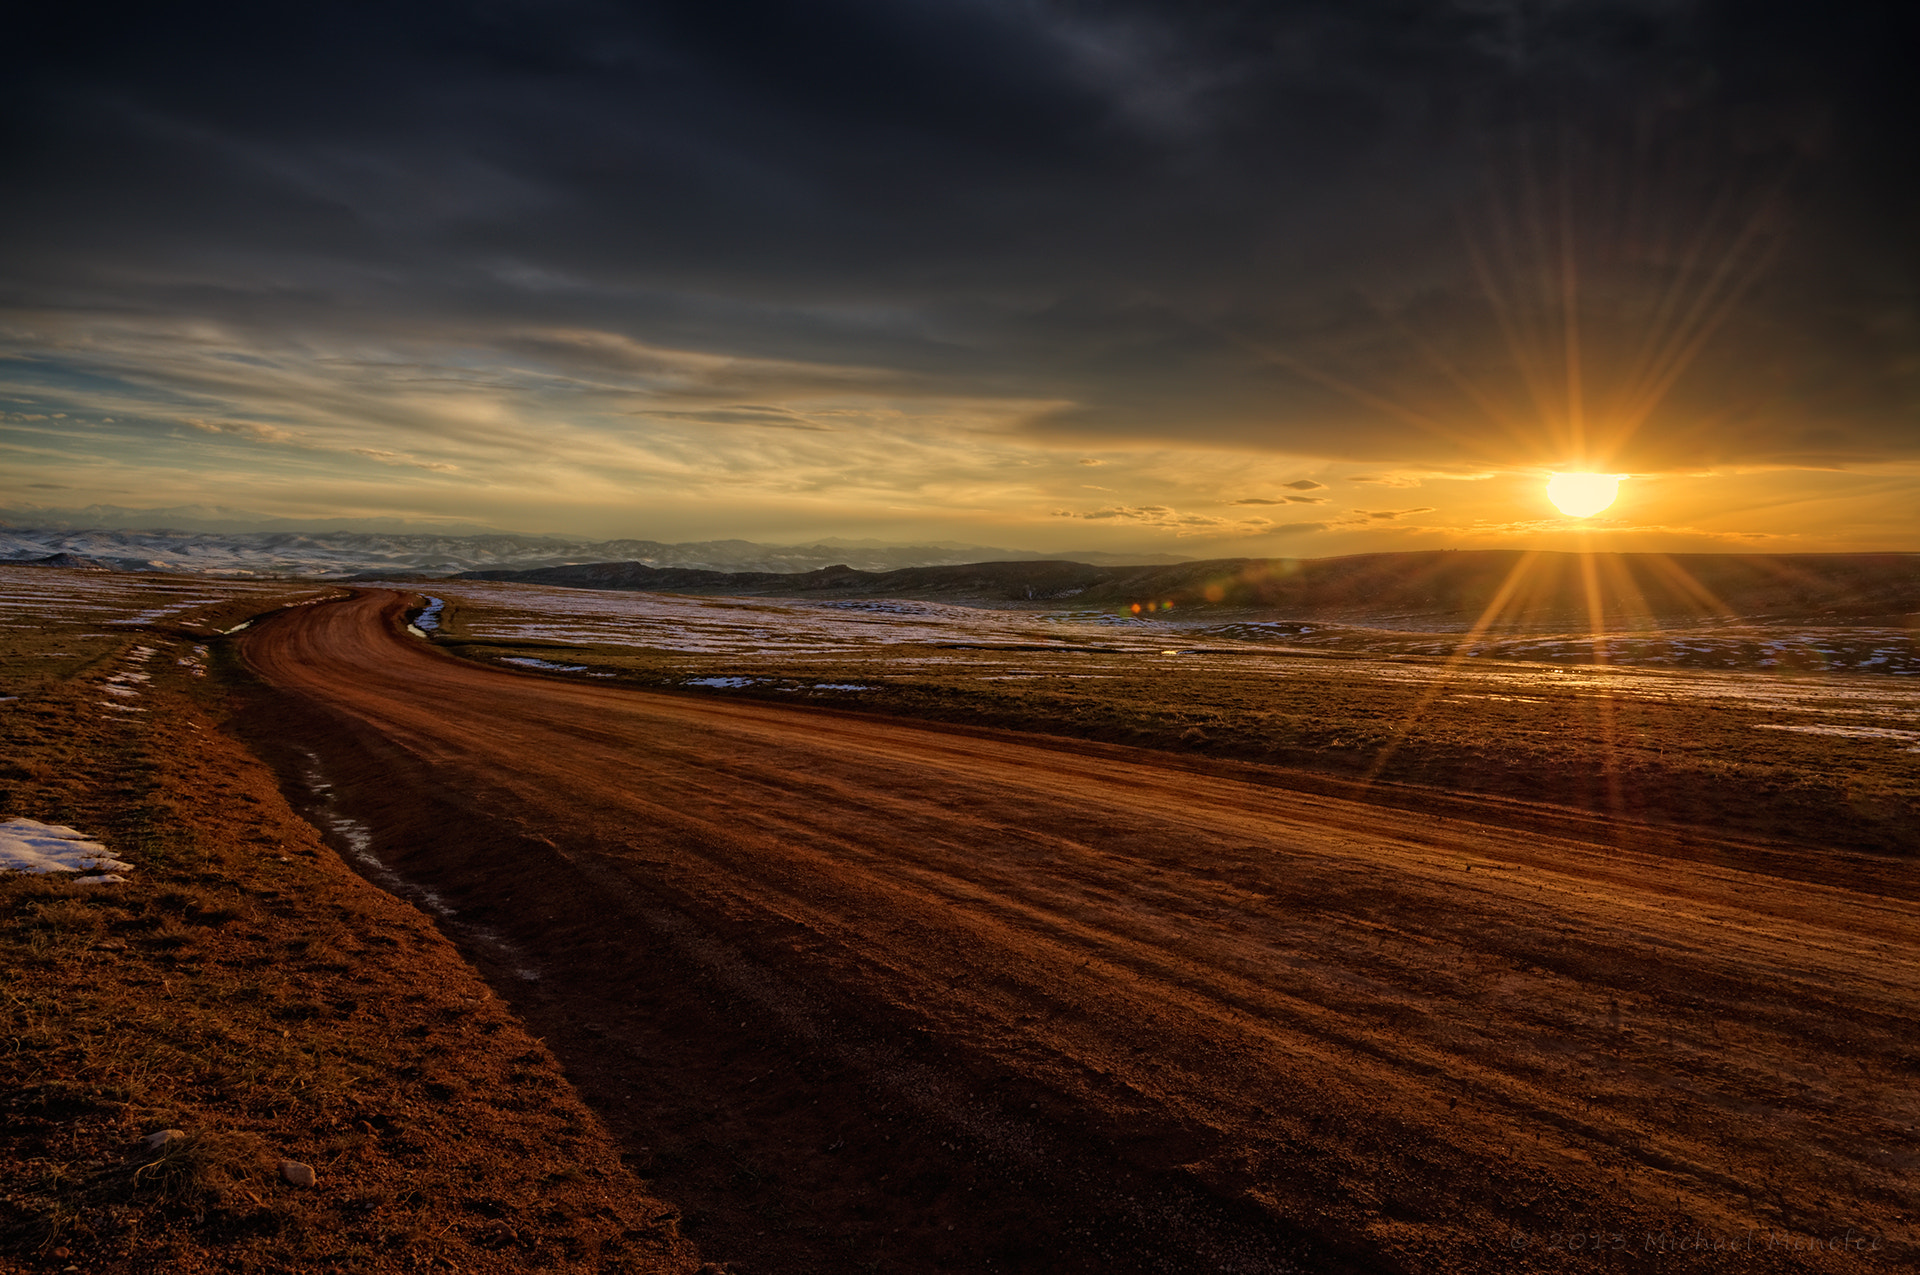 Photograph Sundown on the Laramie Foothills by Michael Menefee on 500px